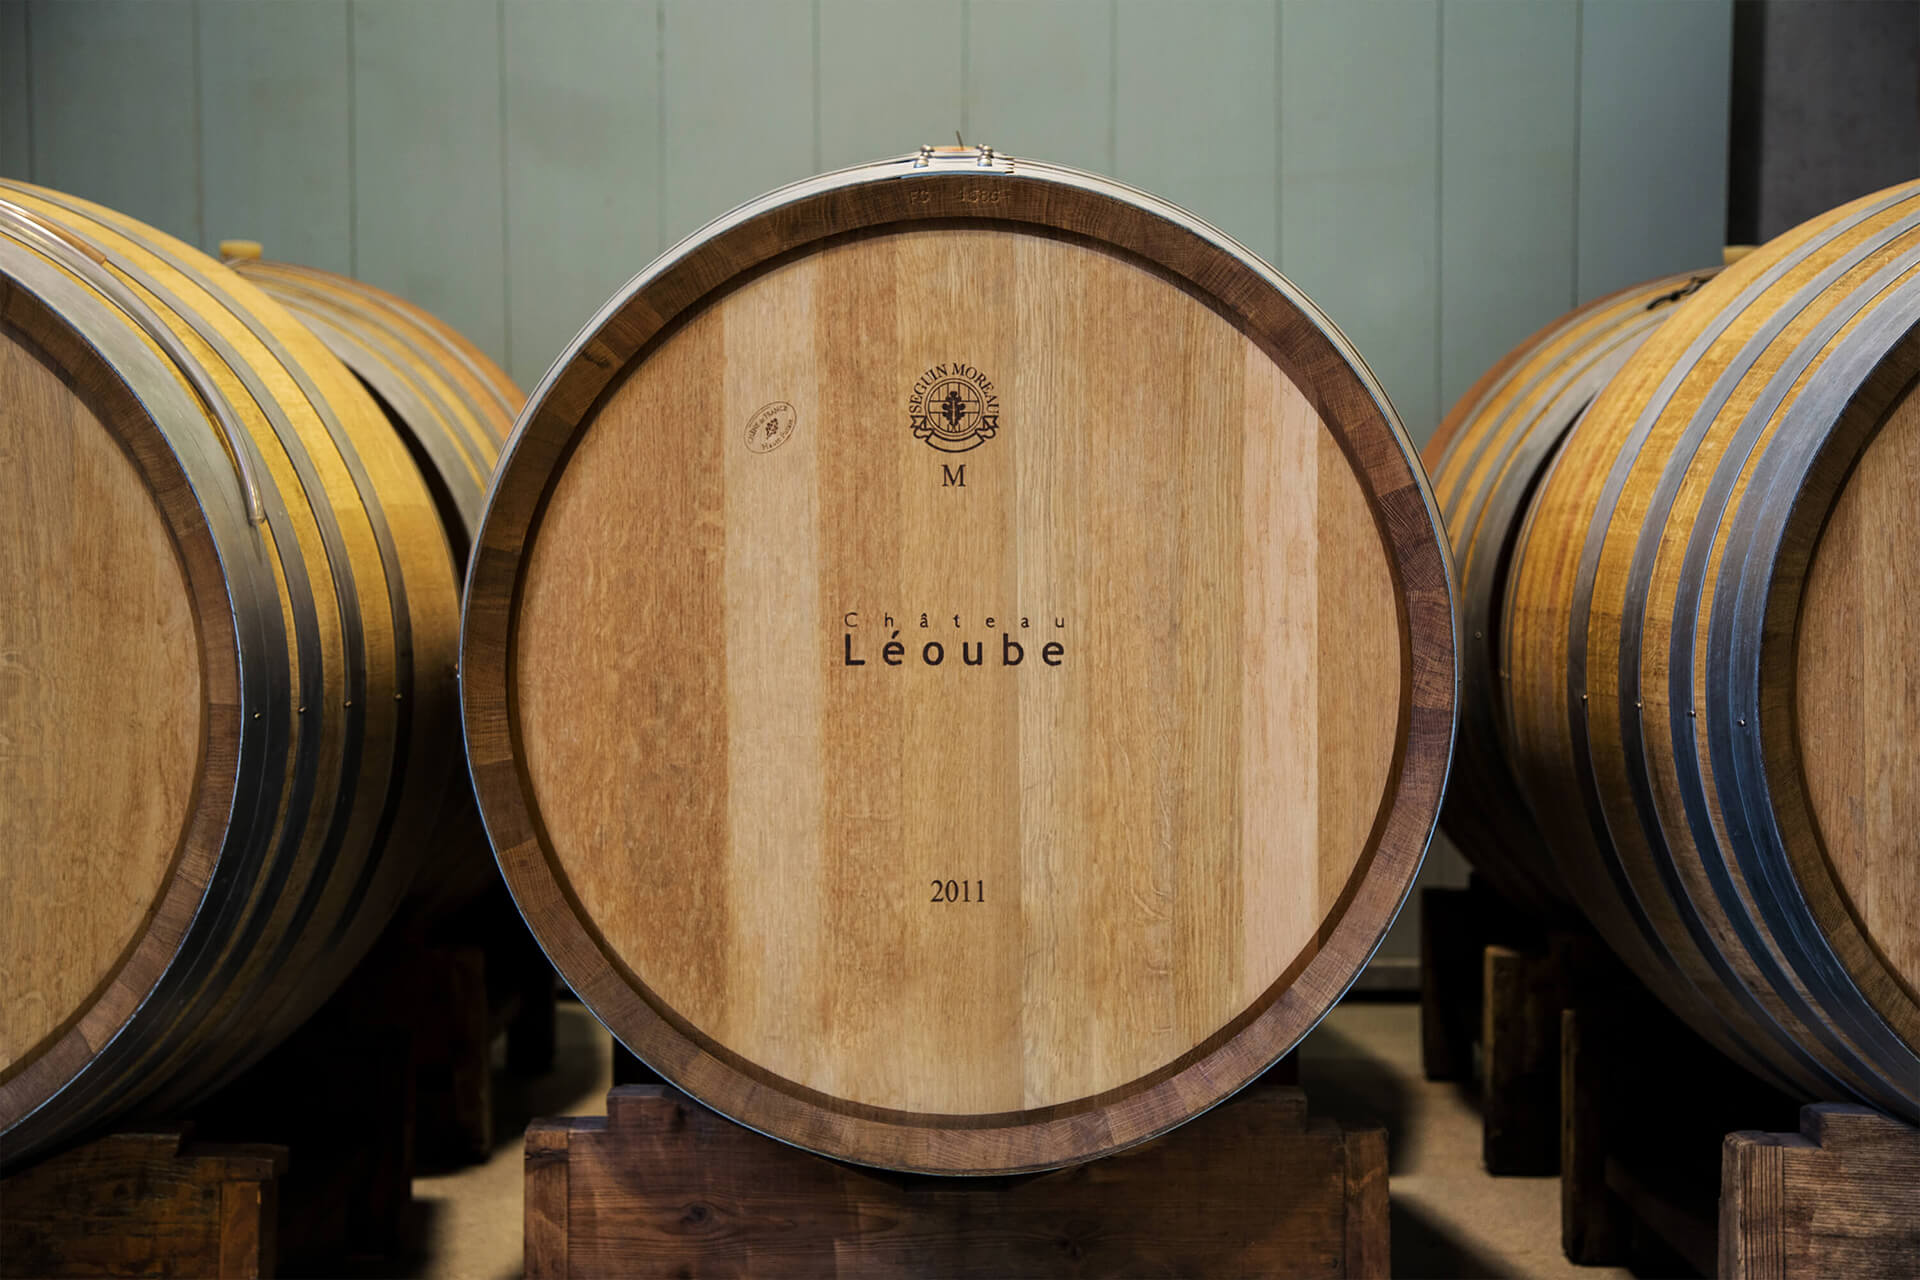 Chateau Leoube, Rose, Wine, South of France, Bamford, Organic, Barrel, Wood, Brewery